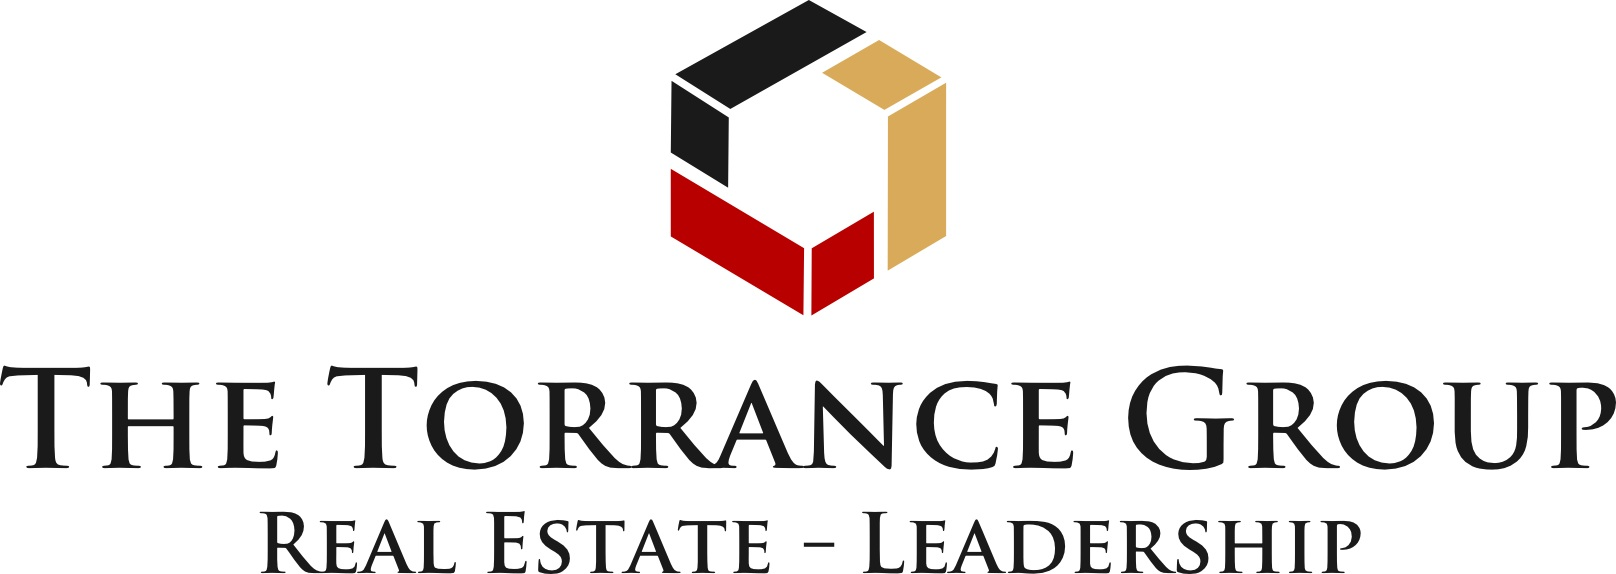 Torrance group logo2web 1